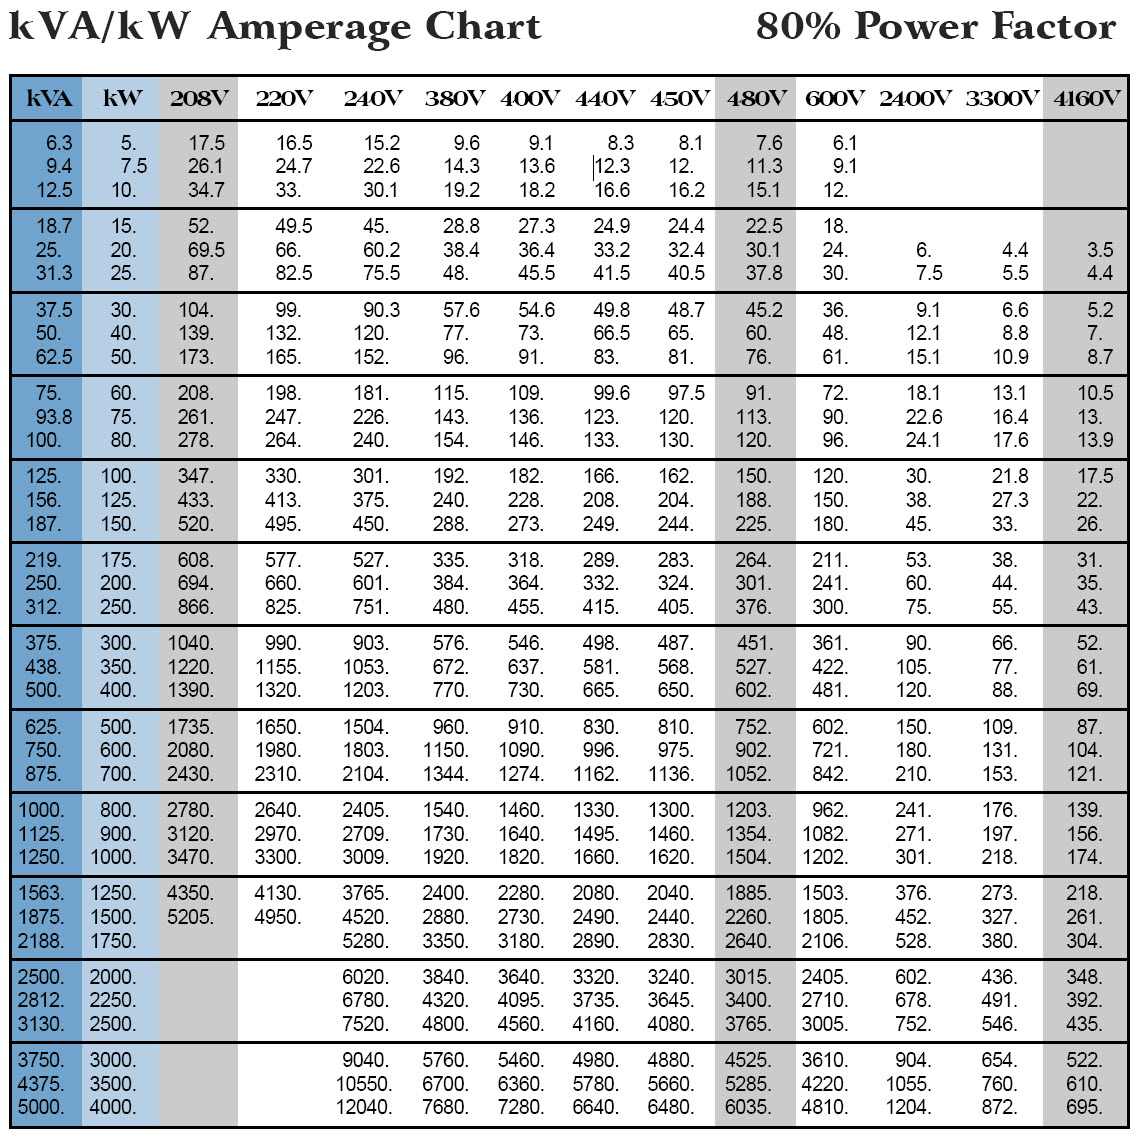 Electric Wire Amp Chart